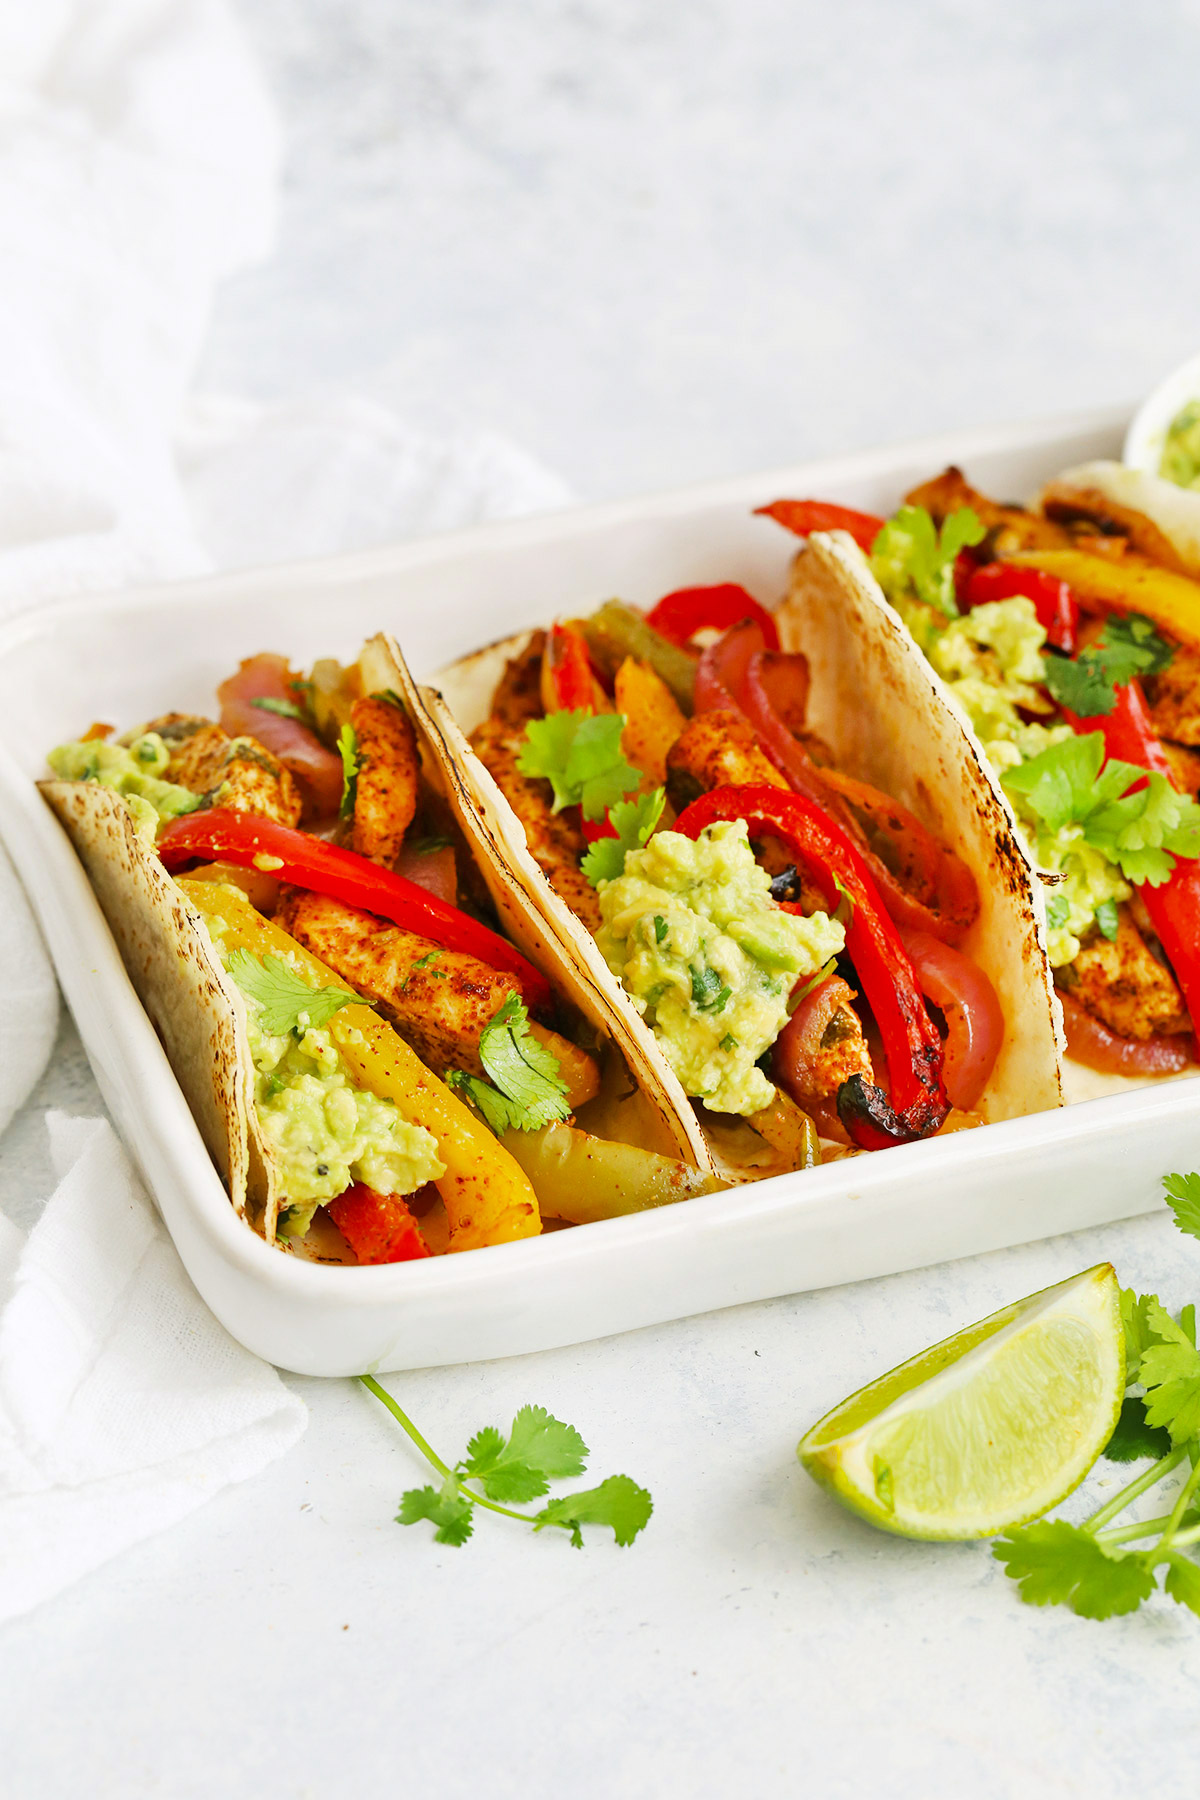 Sheet Pan Chicken Fajitas from One Lovely Life